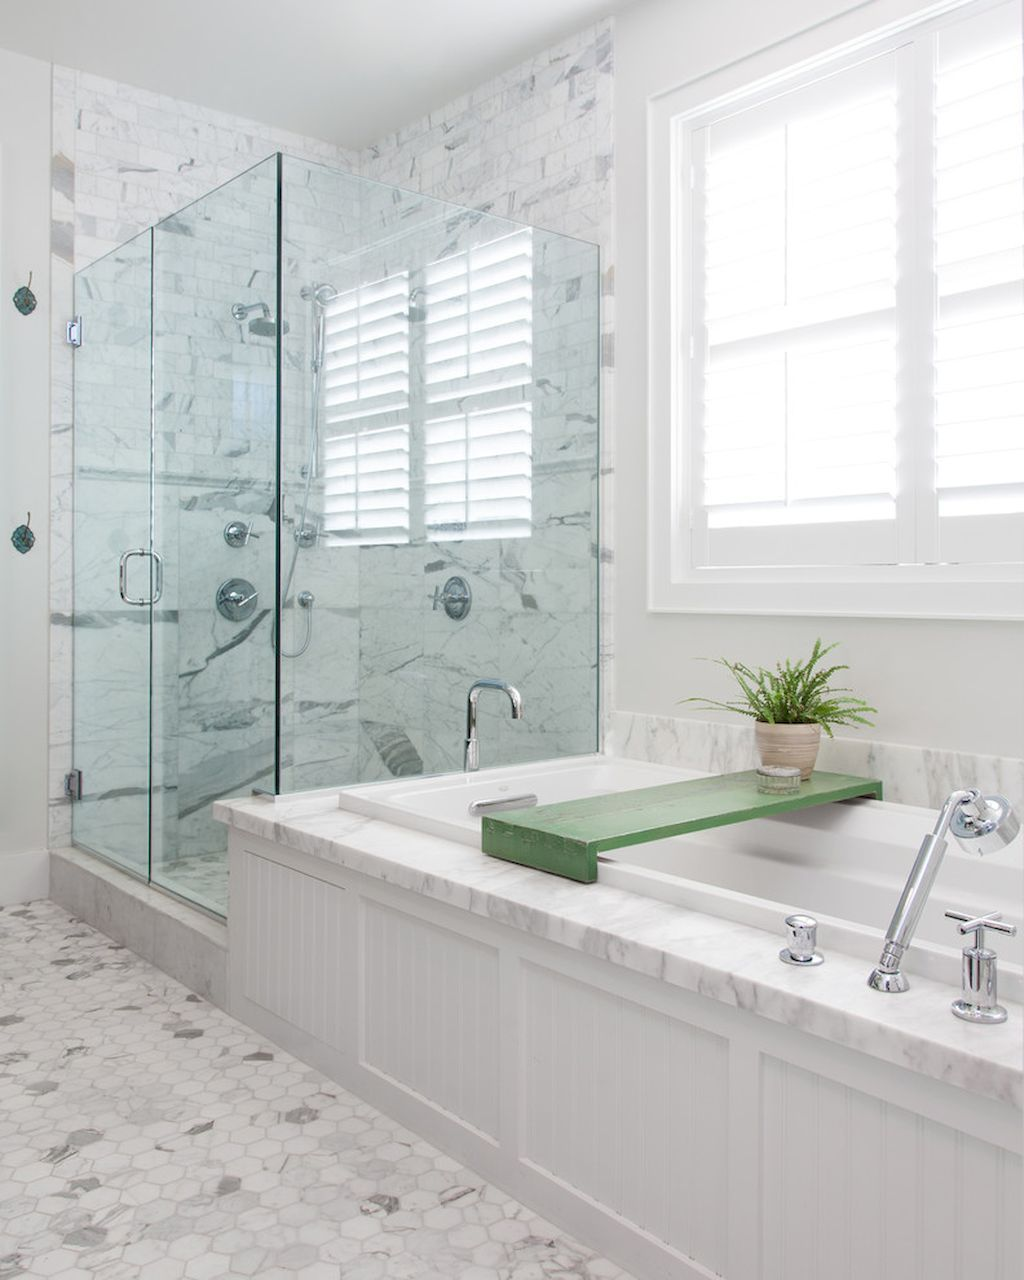 photos of remodeled bathrooms%0A    Fresh and Cool Master Bathroom Remodel Ideas on A Budget